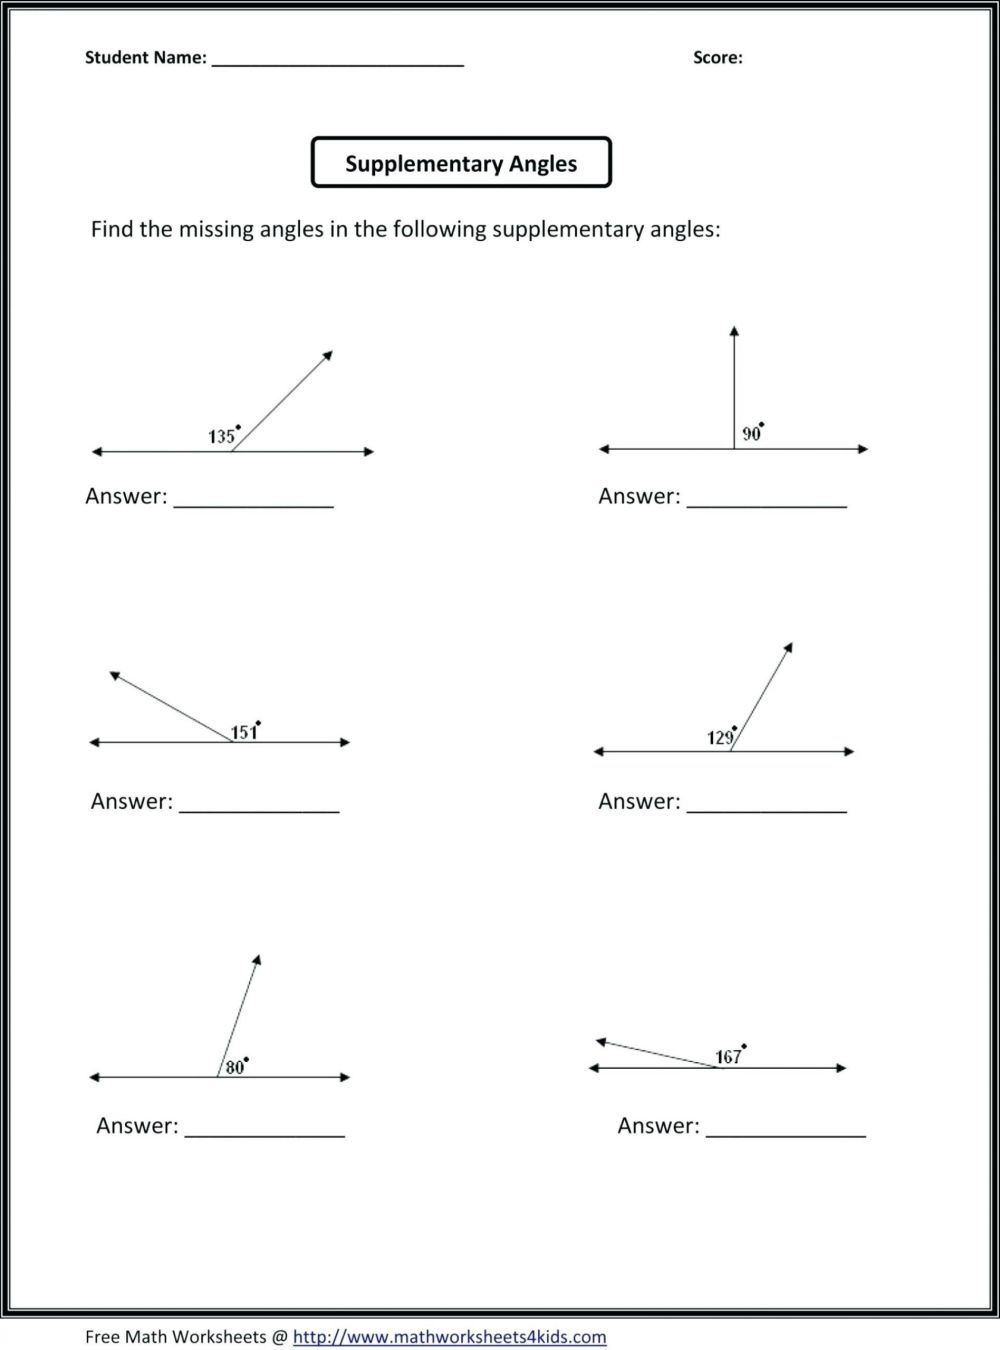 medium resolution of 4 Free Math Worksheets Second Grade 2 Place Value Rounding Round 3 Digit  Numbers Nearest 100 - apocalomegaproductions.com